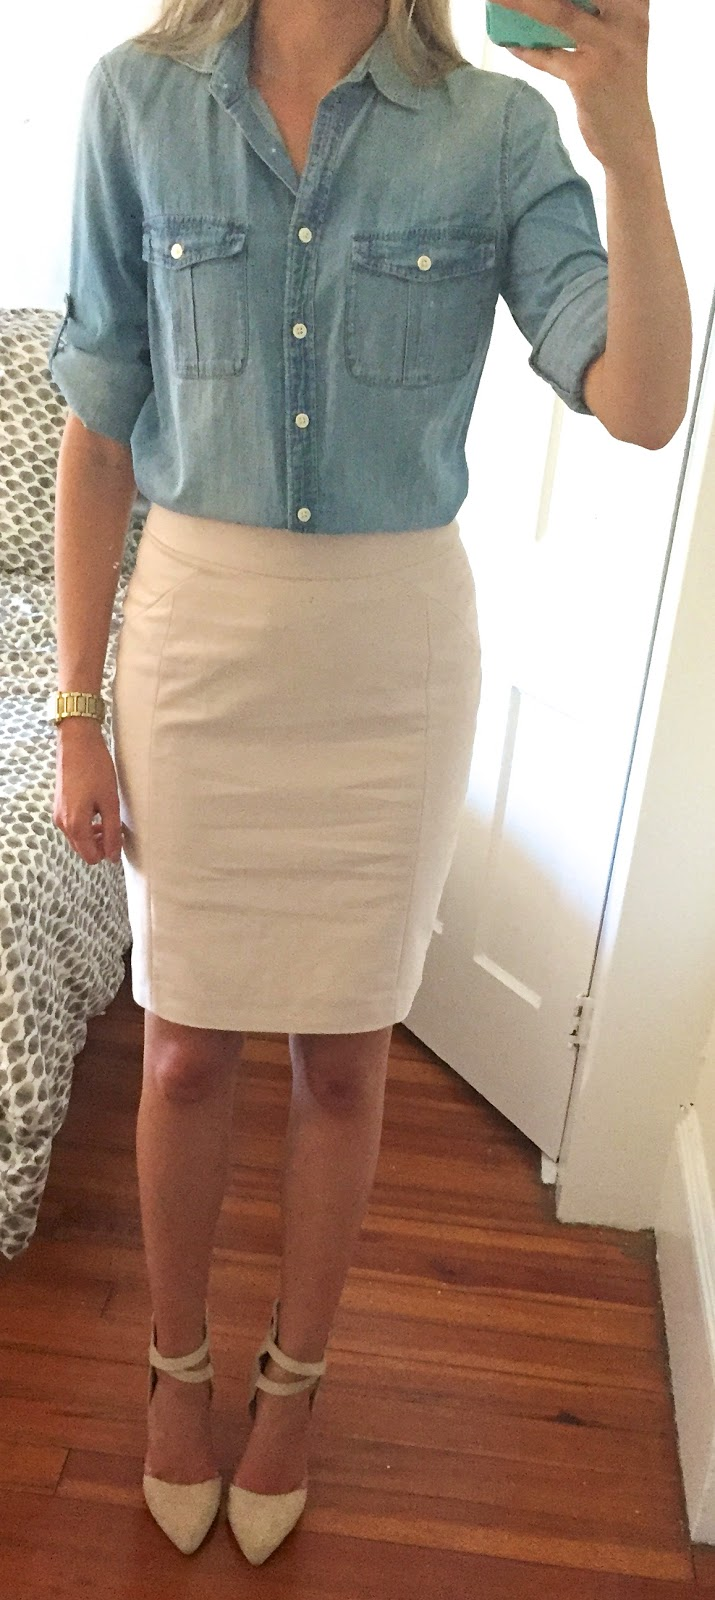 Shop our Collection of Women's Cream Skirts at avupude.ml for the Latest Designer Brands & Styles. FREE SHIPPING AVAILABLE!